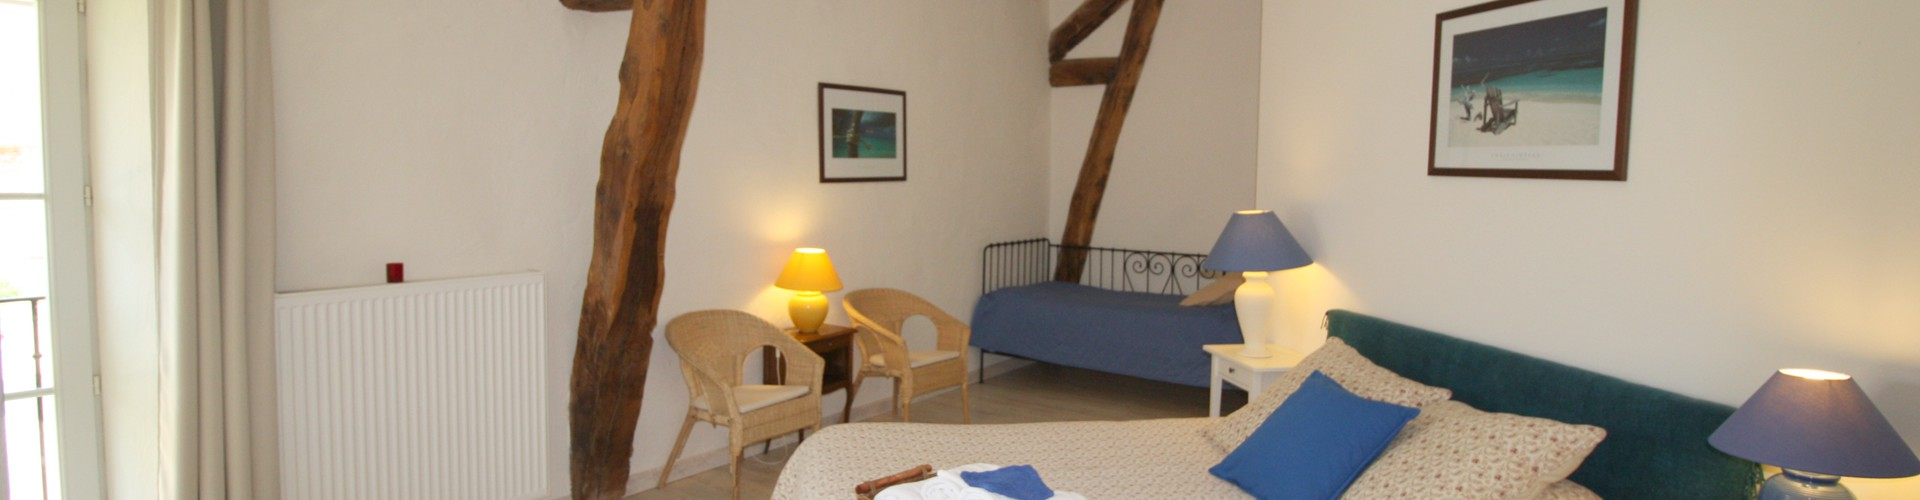 Ferme d'Orsonville - Bed and Breakfast - Blanche